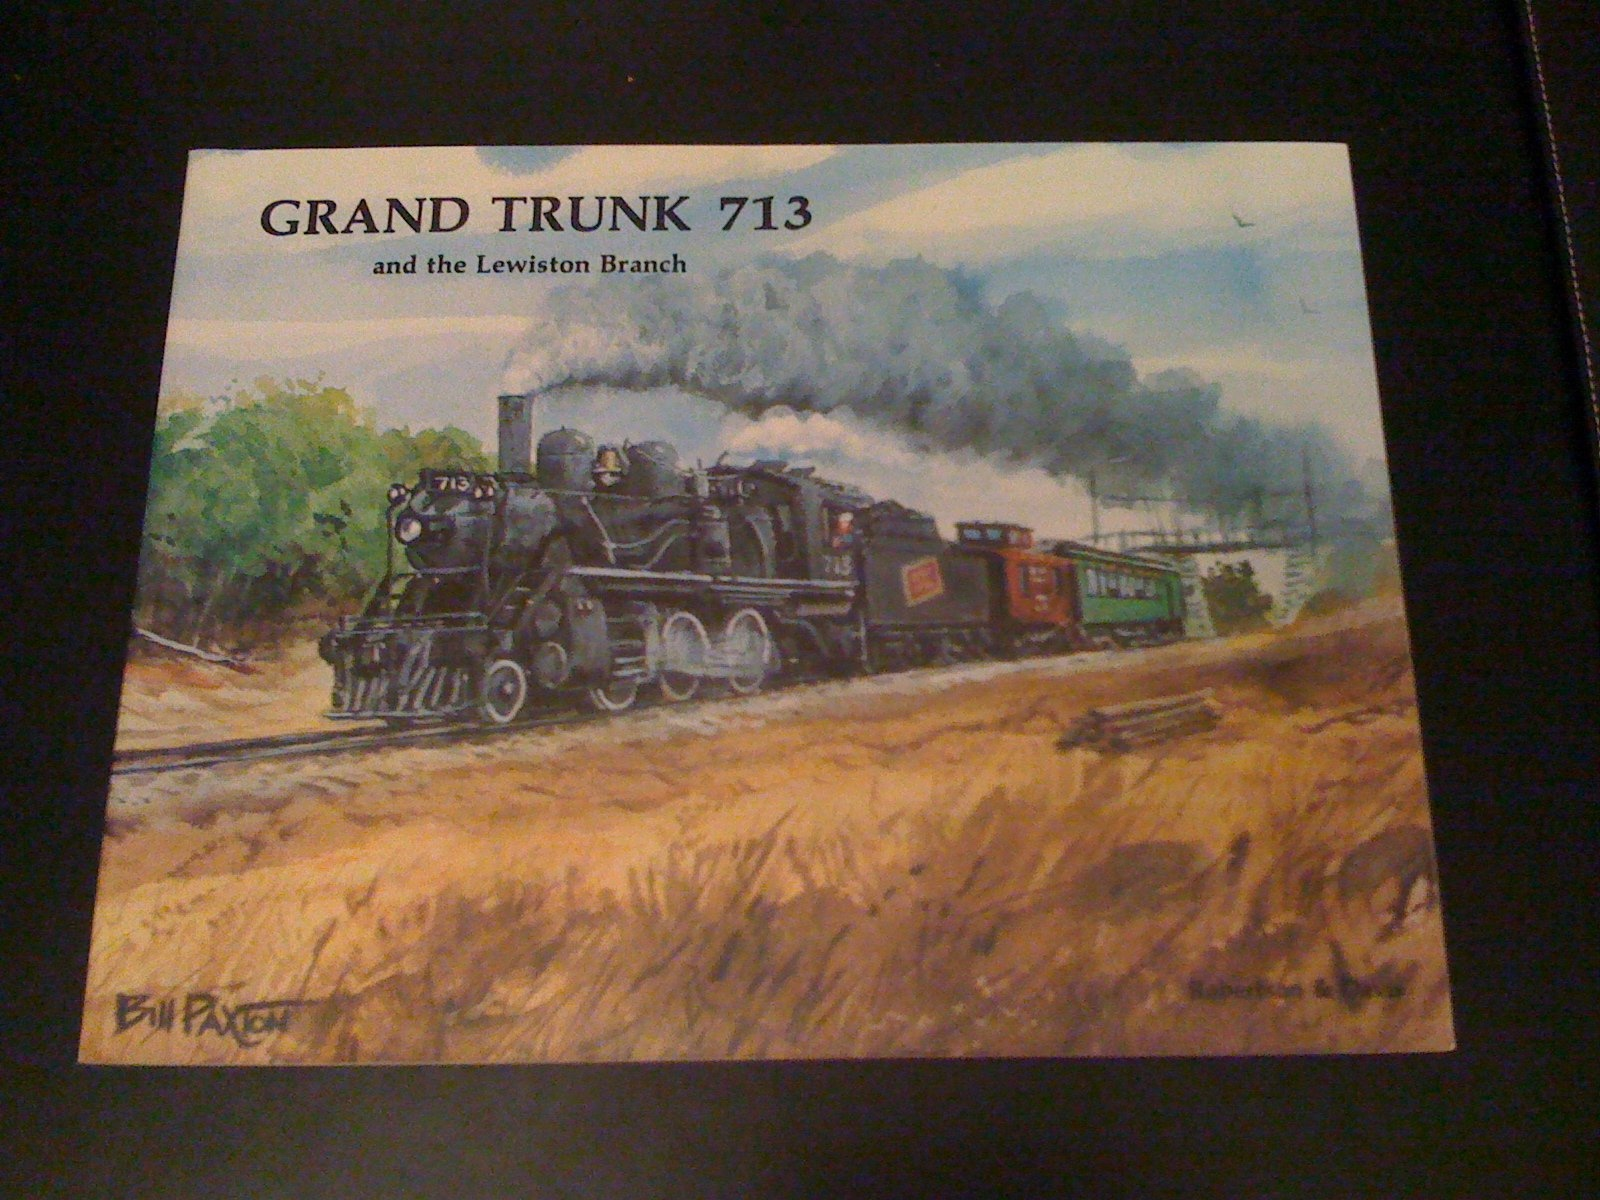 Grand Trunk 713 and the Lewiston Branch, Robertson, Edwin Bill with John R. Davis